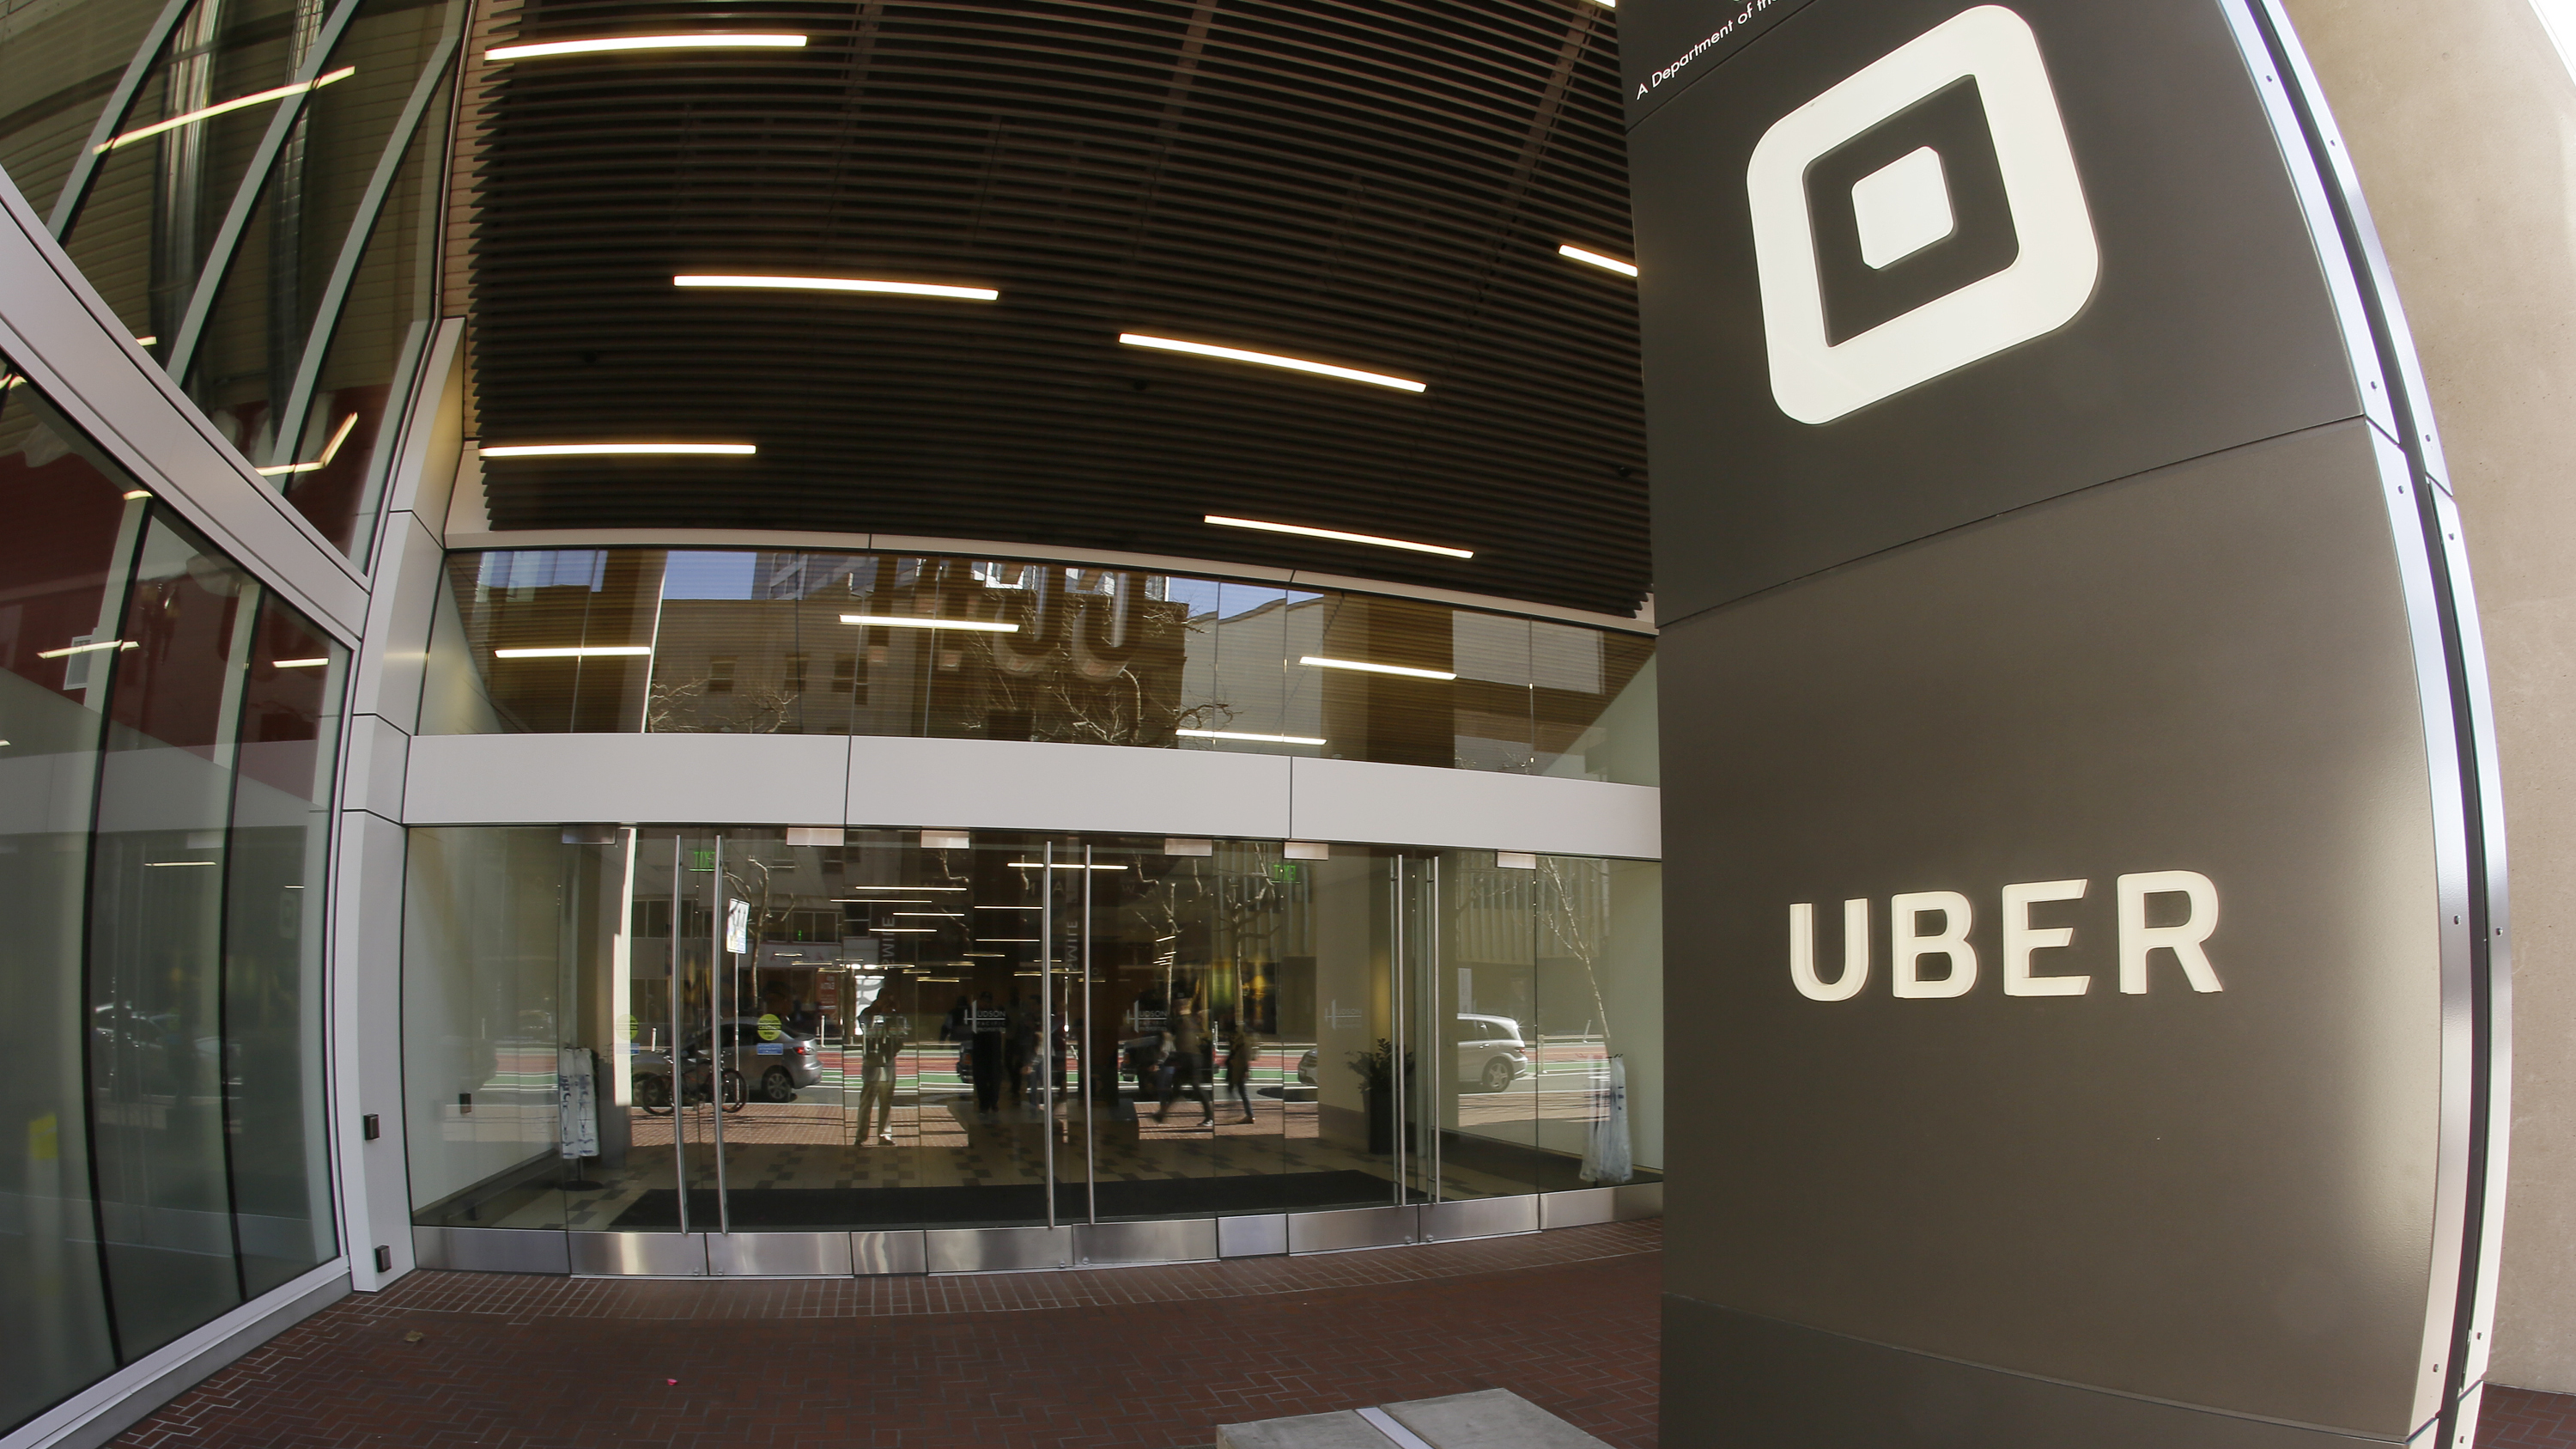 Uber firings: over 20 staff dismissed amid sexual harassment investigation